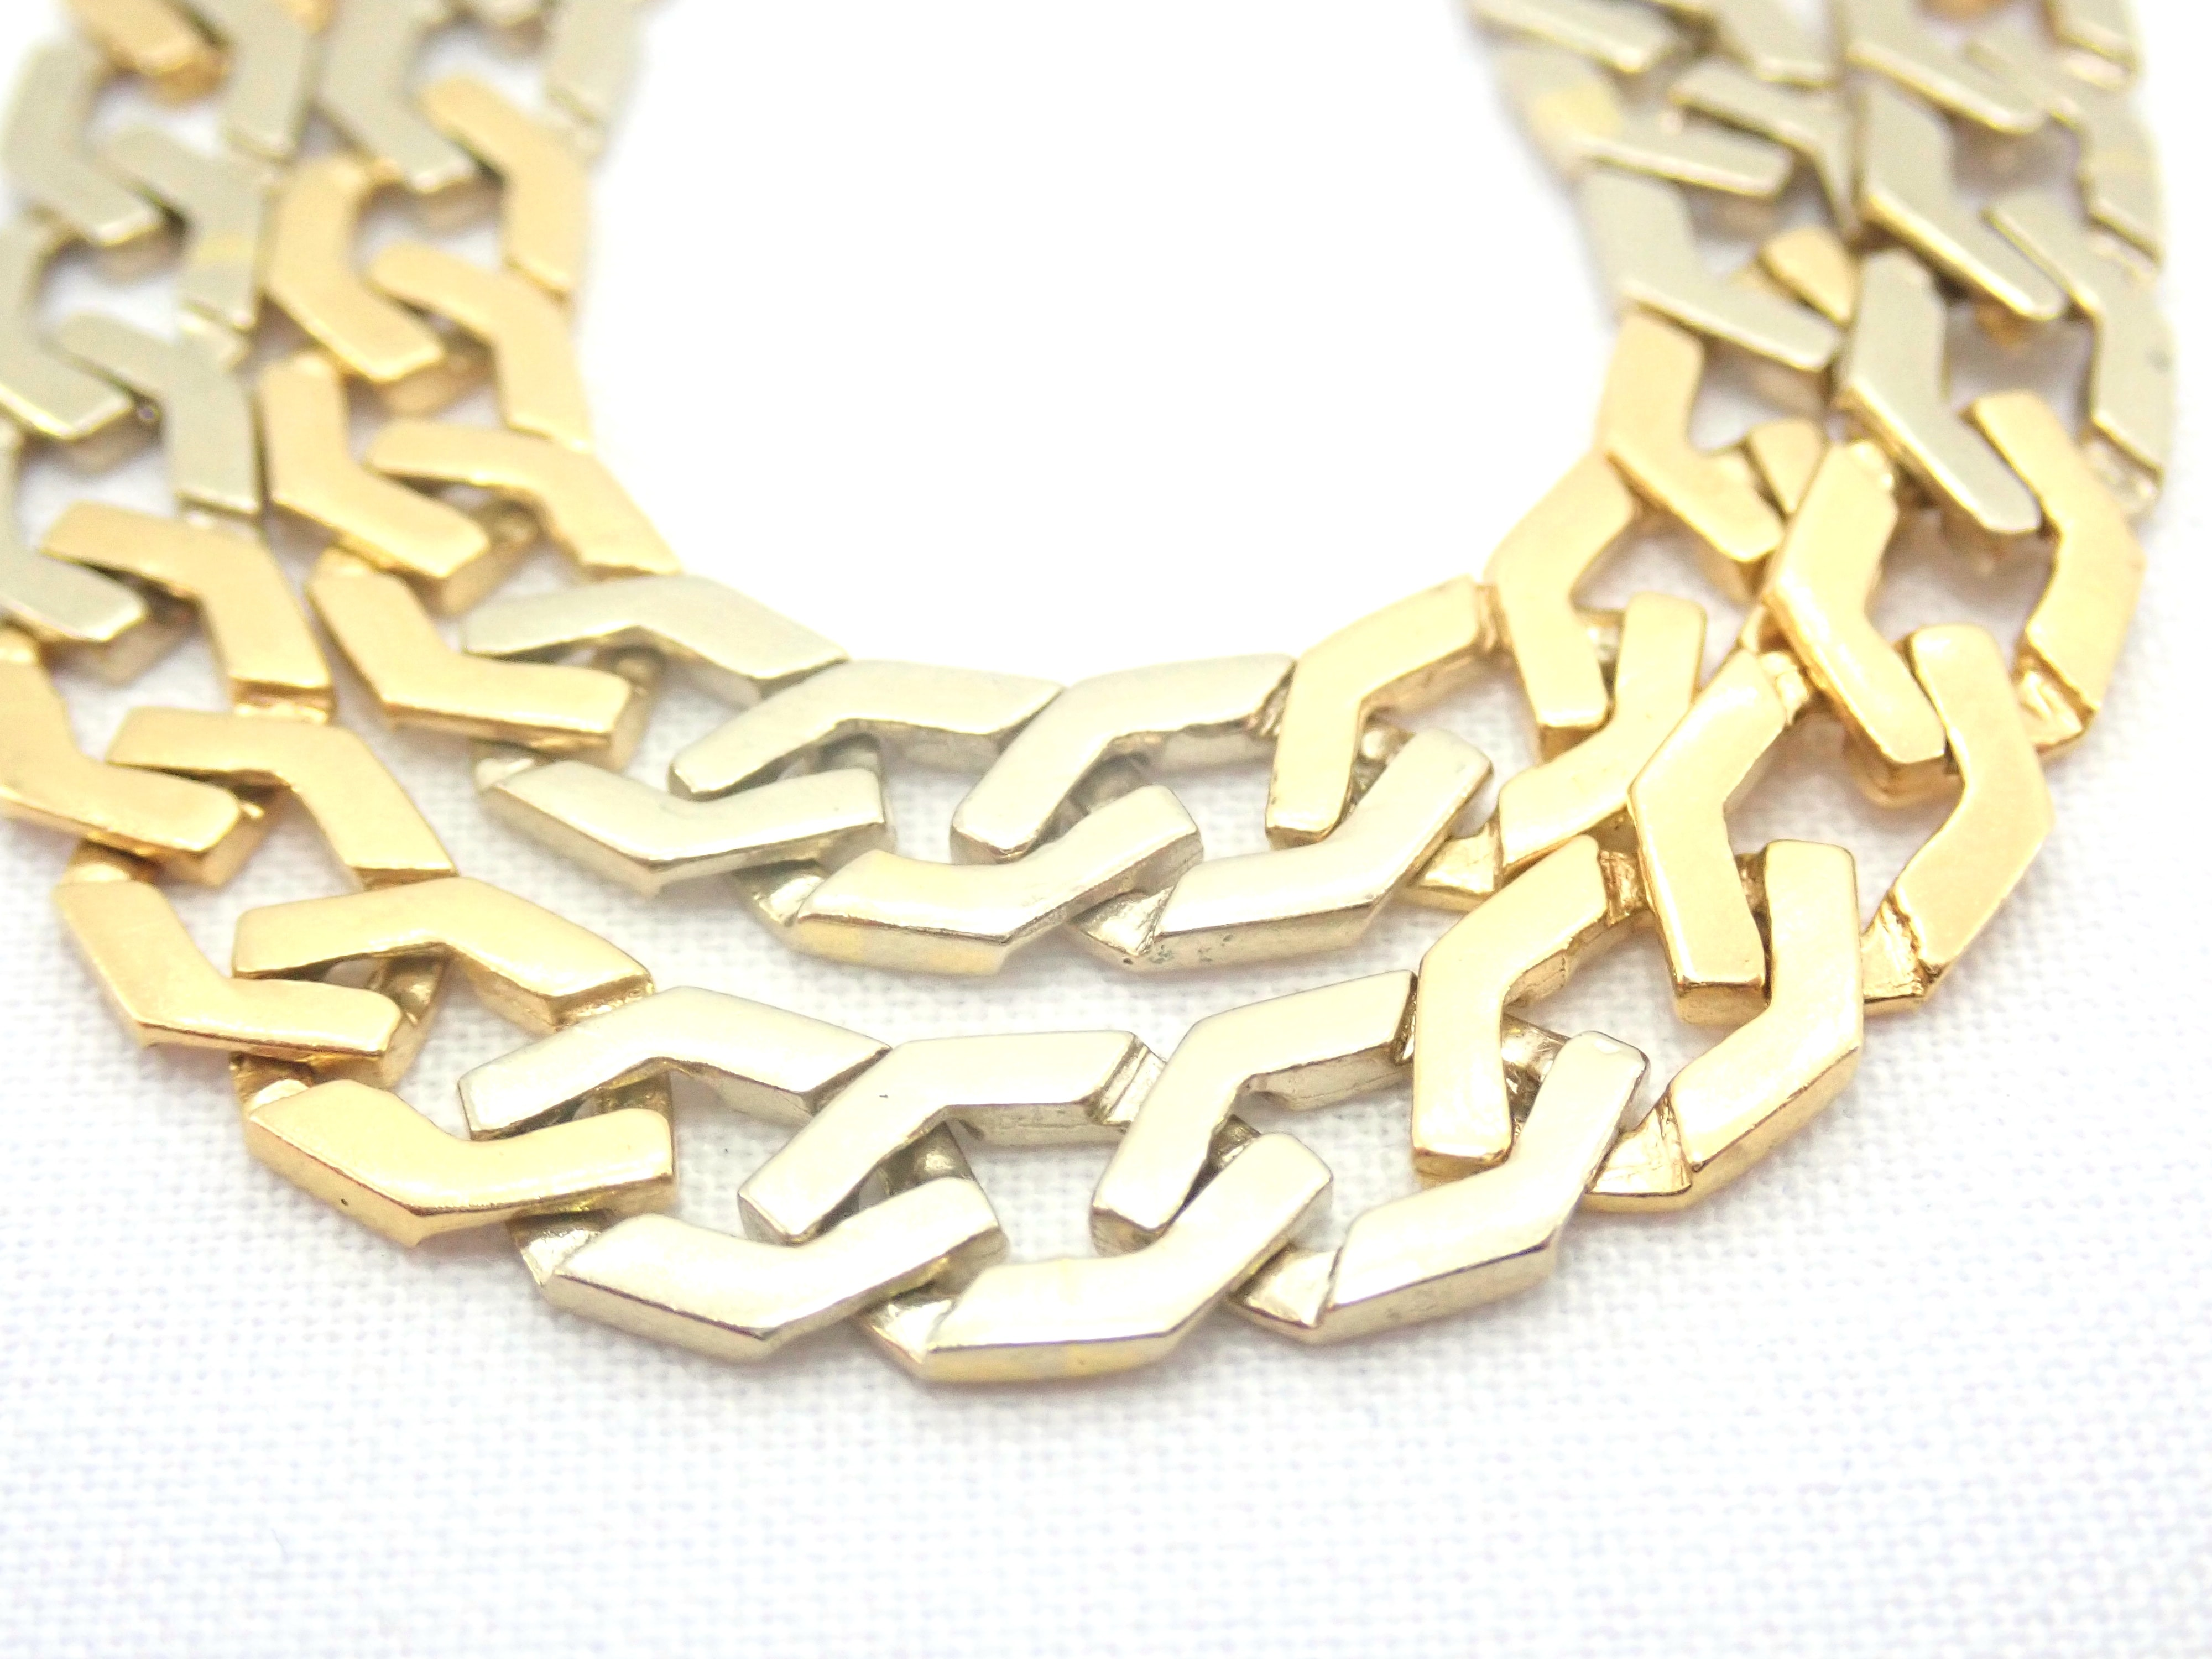 """AA000681 - 18ct Two Tone Gold Fancy Flat Linked Curb Chain Lobster Claw Clasp 20"""" - 33.3 gms #5311"""